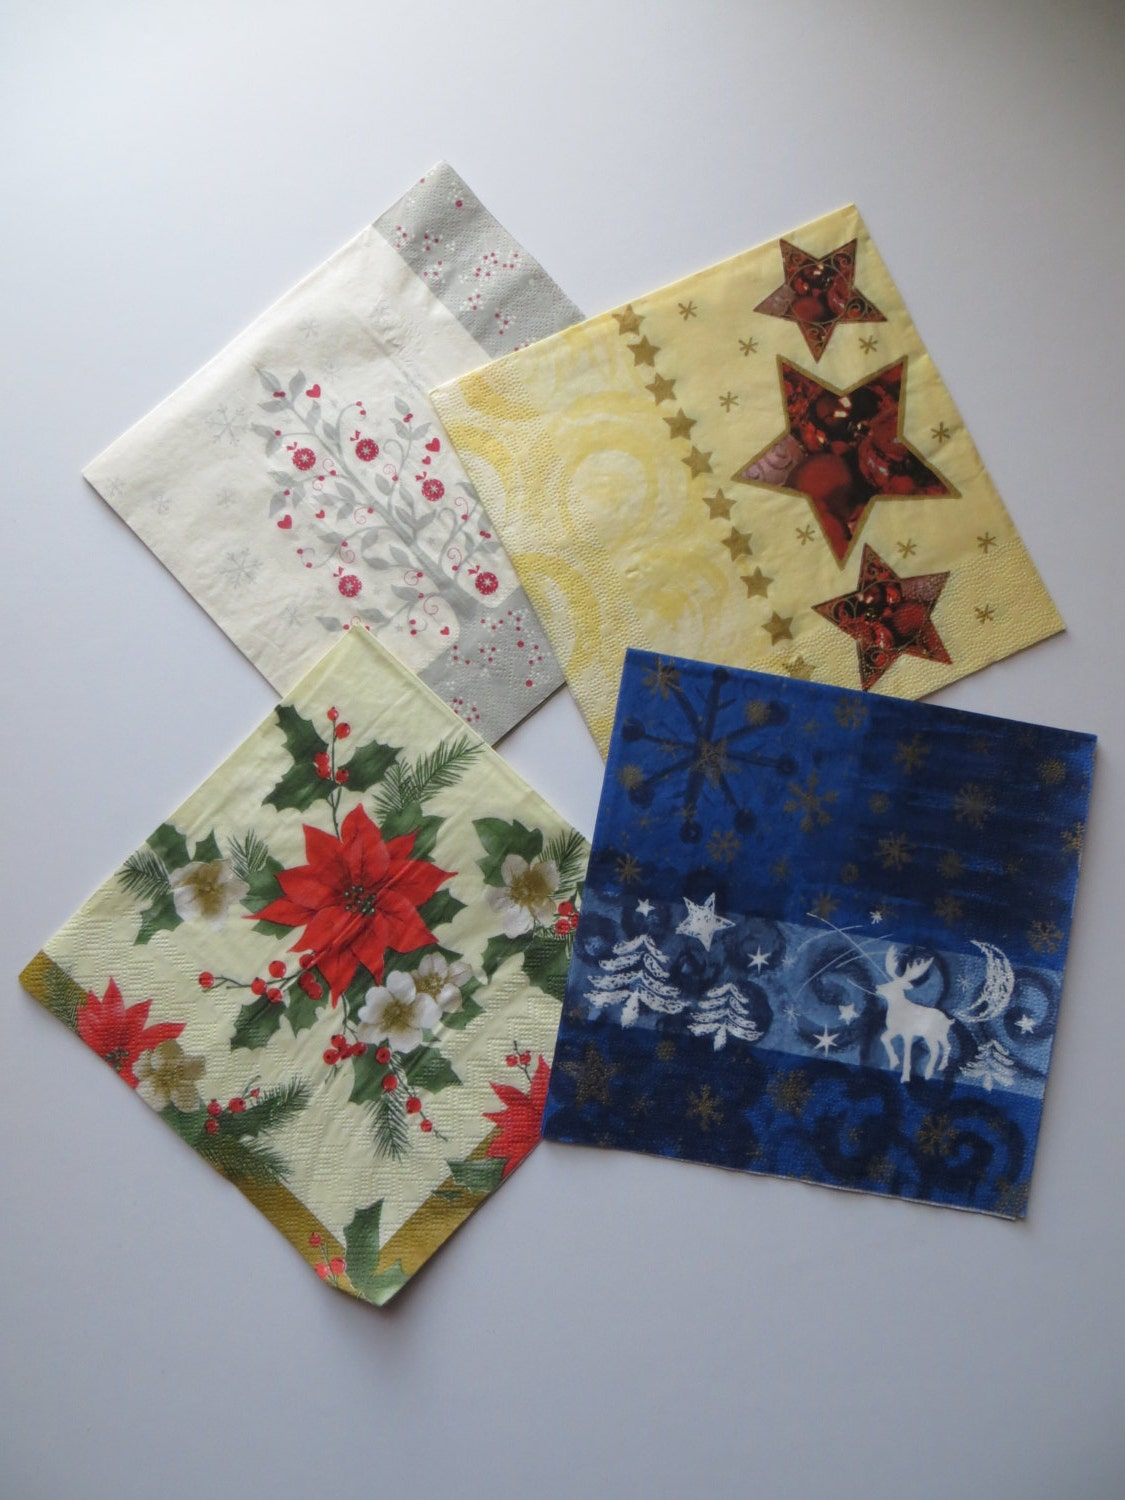 Add Holiday Cheer to your party and home. Wide range of Christmas themed paper products including napkins, guest towels, plates and pocket tissues.